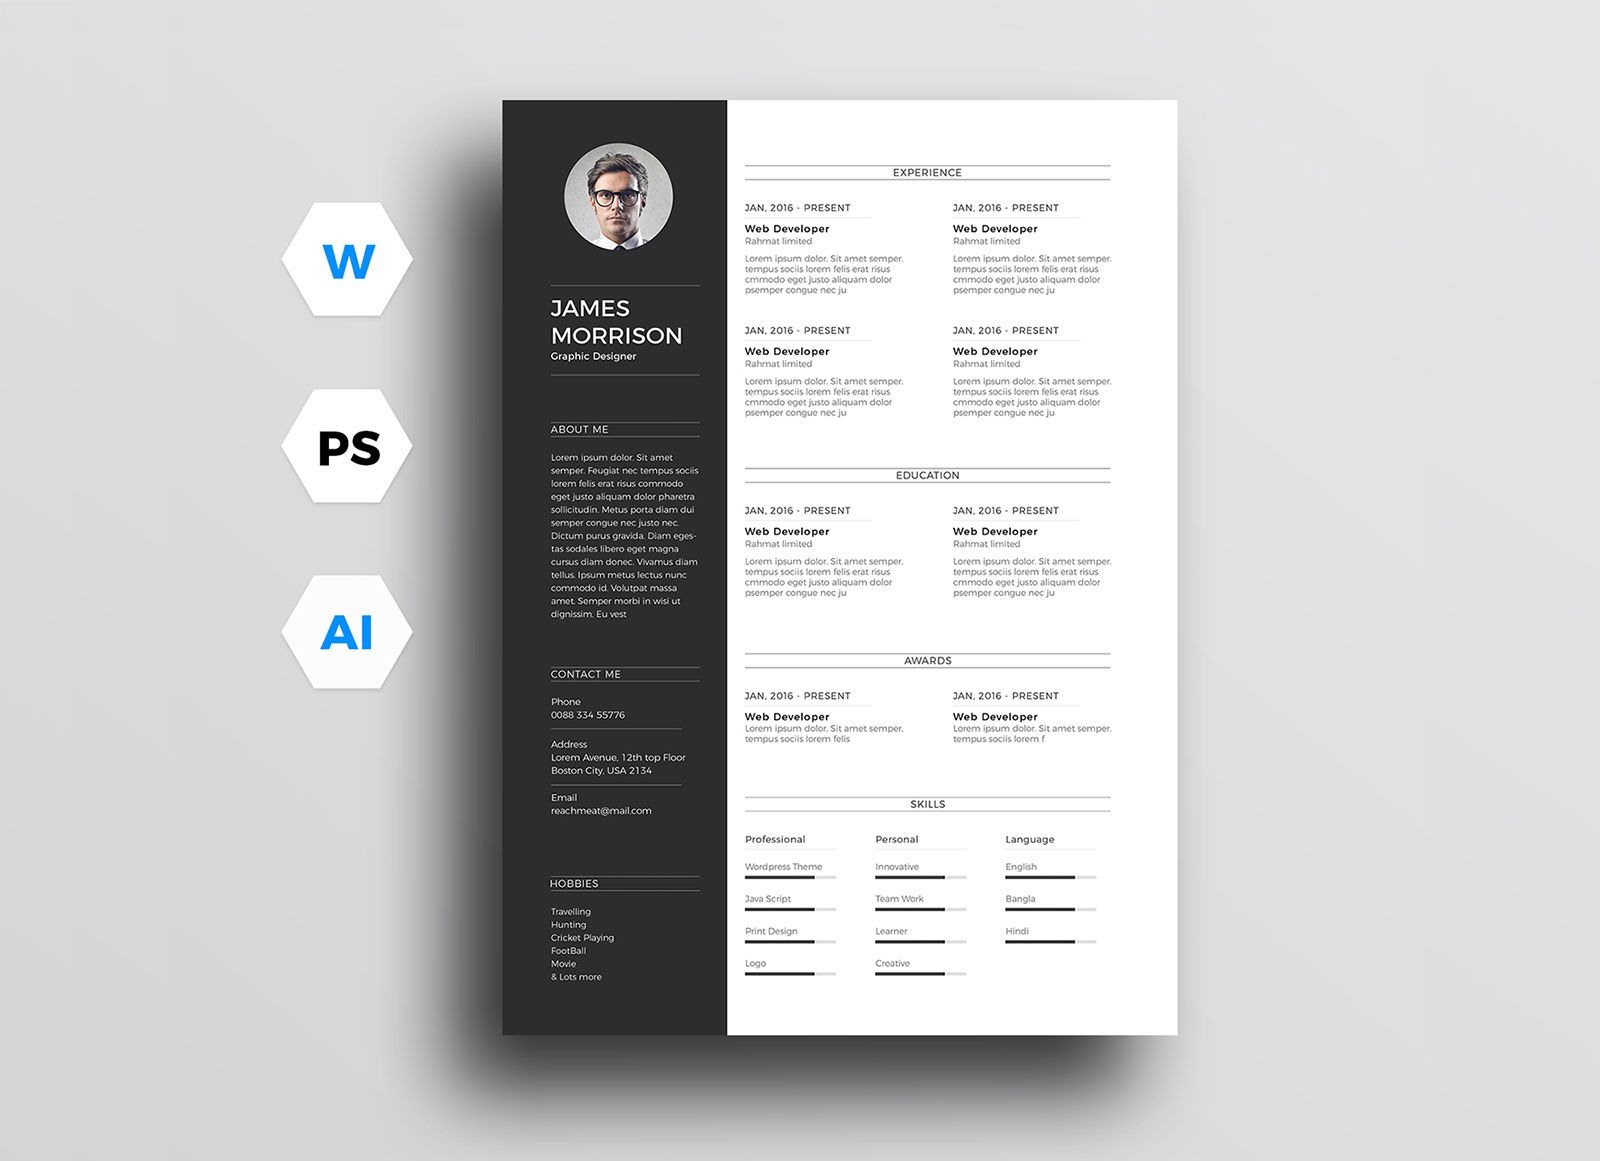 003 Archaicawful Photoshop Cv Template Free Design  Modern Psd Resume DownloadFull